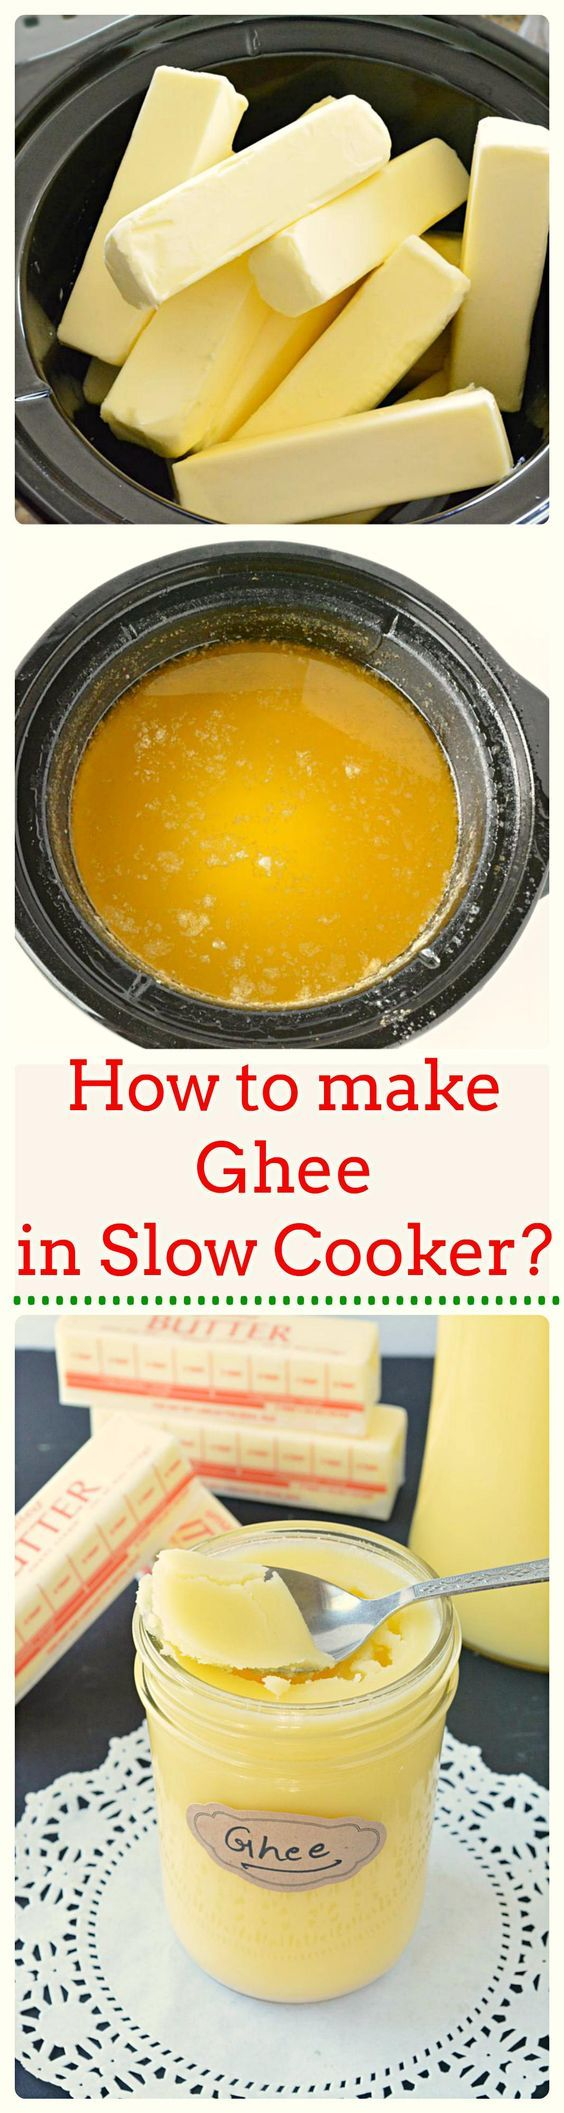 750 best indian food recipes images on pinterest indian cuisine how to make ghee in slow cooker indian slow cooker recipesindian forumfinder Choice Image